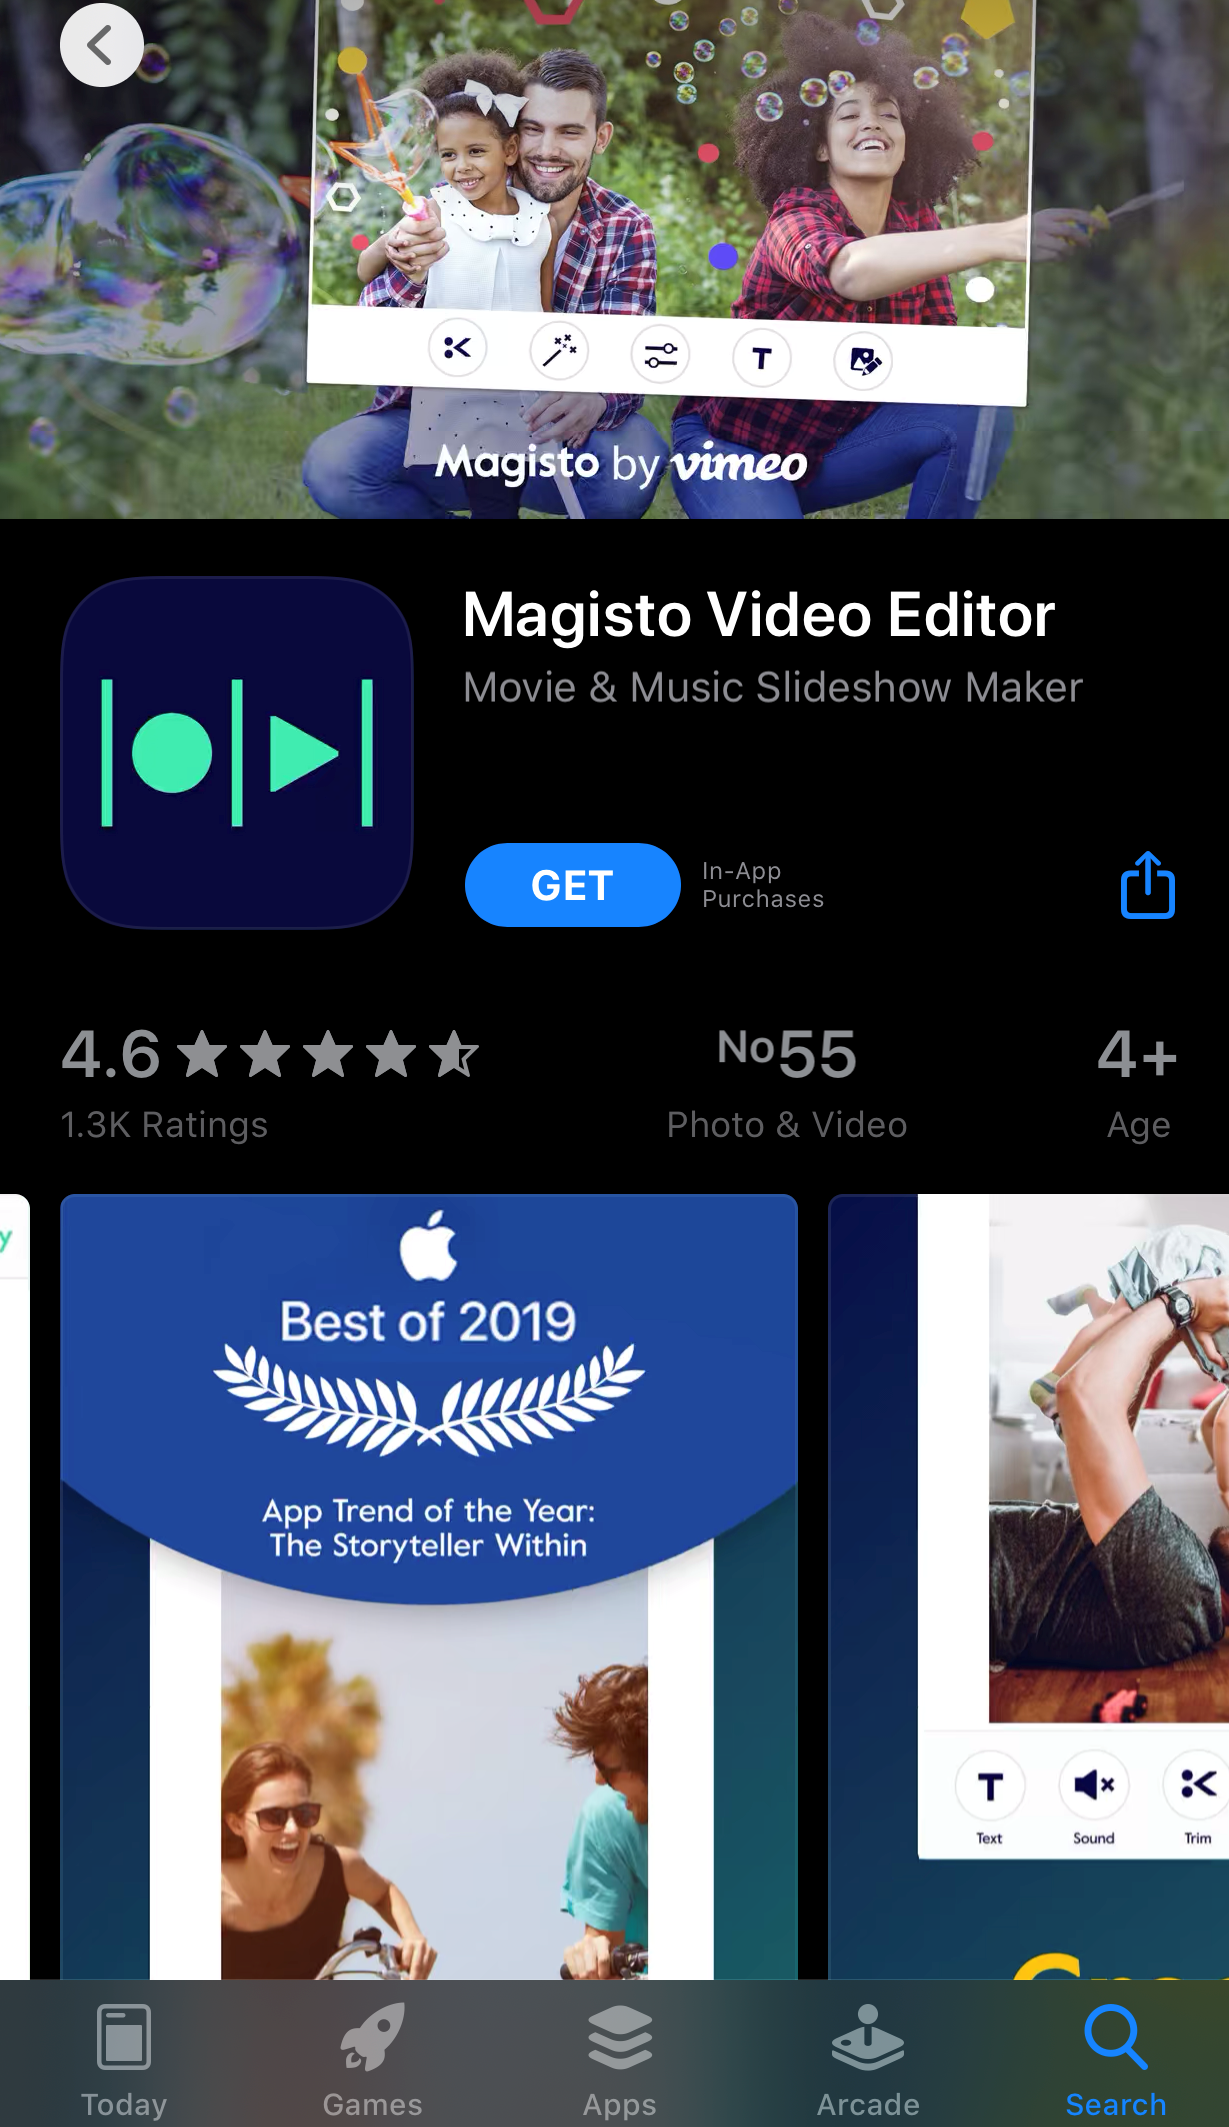 Magisto video editor app for movies and music.